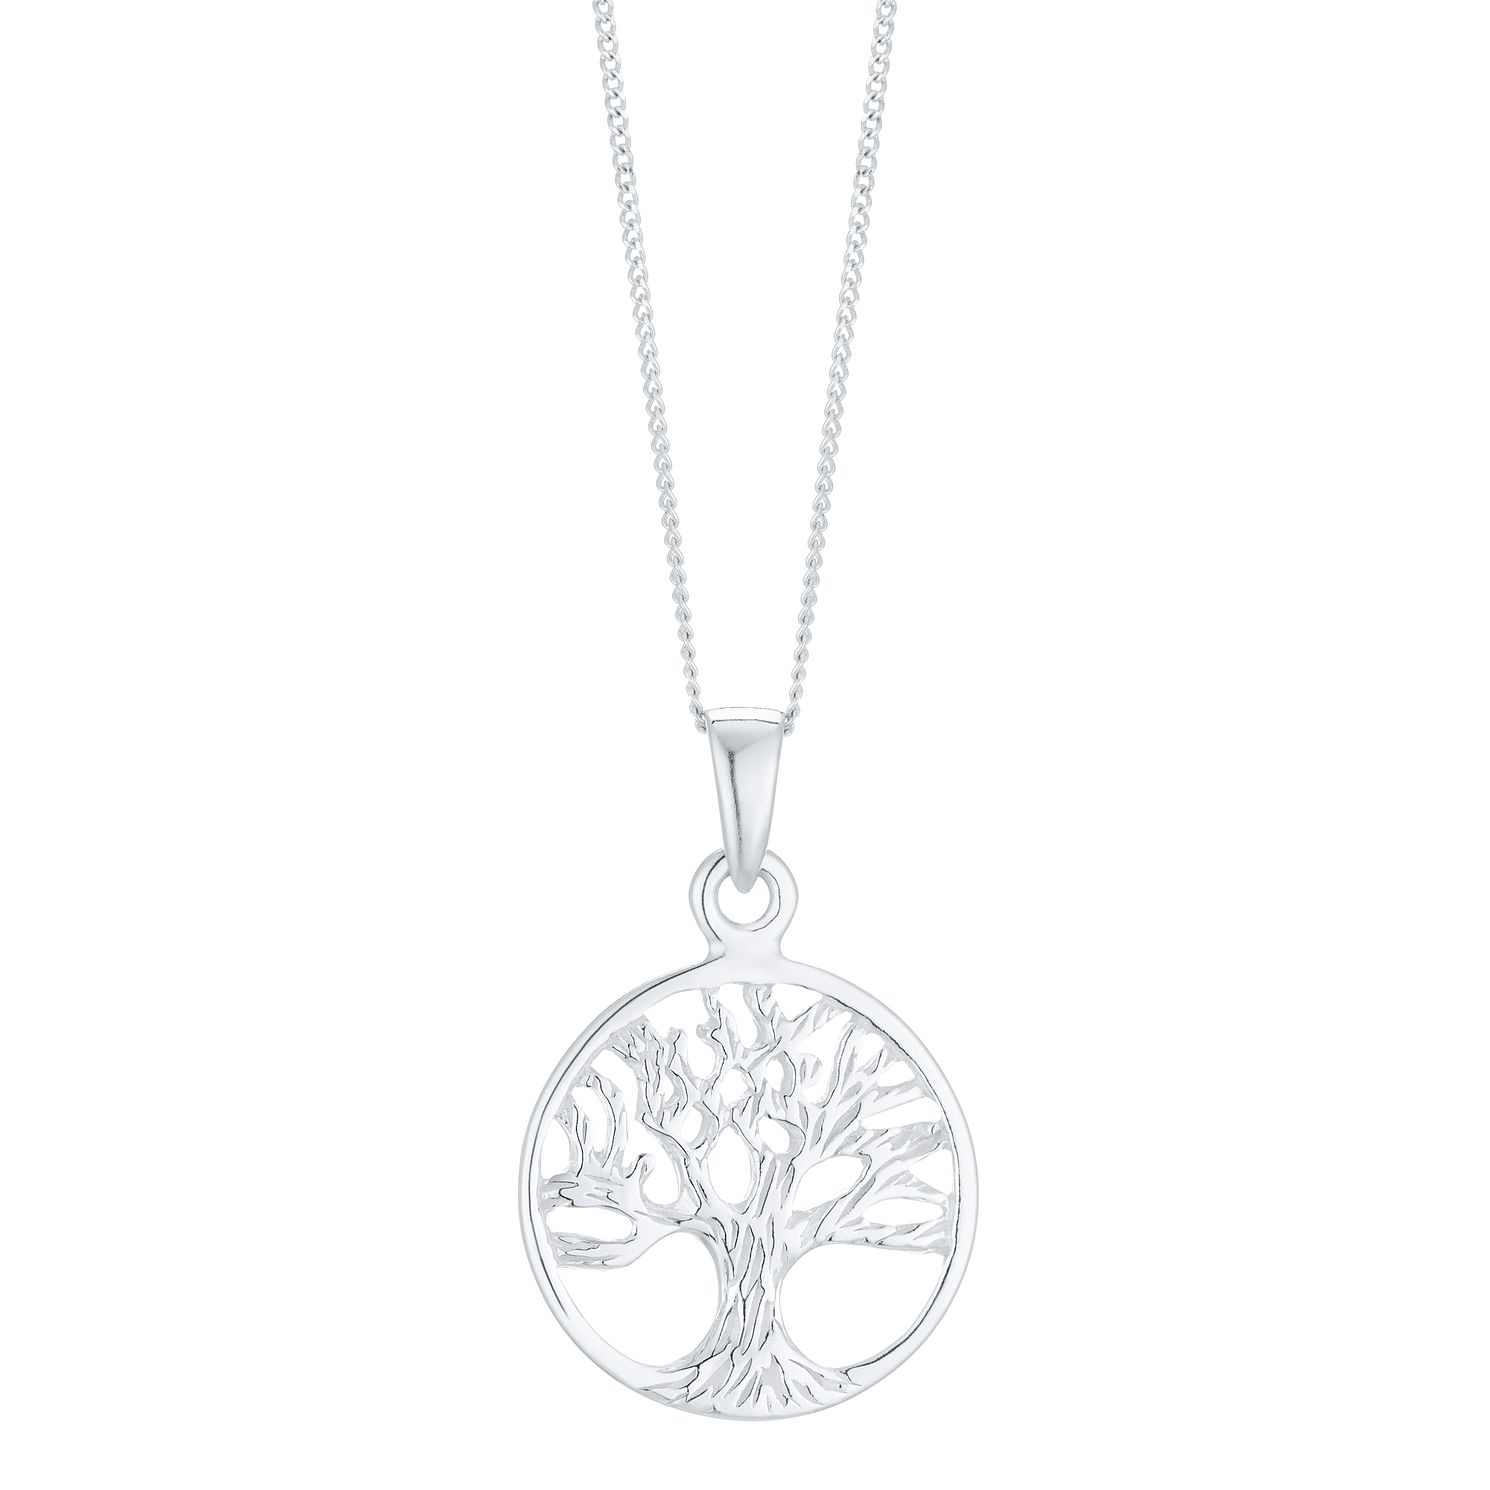 Sterling silver tree of life design pendant hmuel sterling silver tree of life design pendant product number 5326230 mozeypictures Images